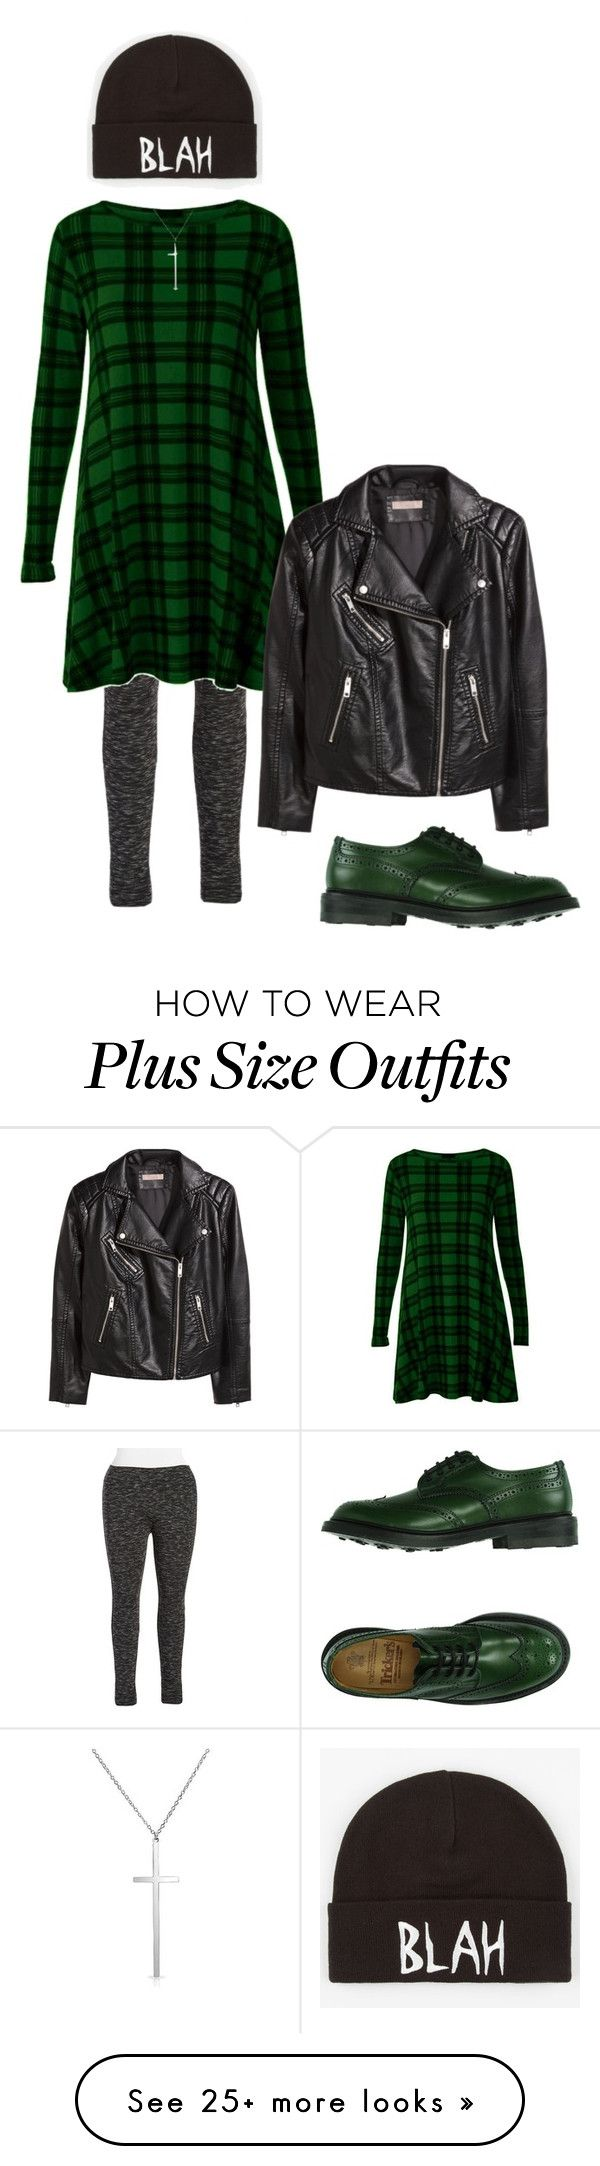 """""""Blah"""" by perpetto on Polyvore featuring Marc New York, H&M, Tricker's, Volcom, Bling Jewelry and plus size clothing"""